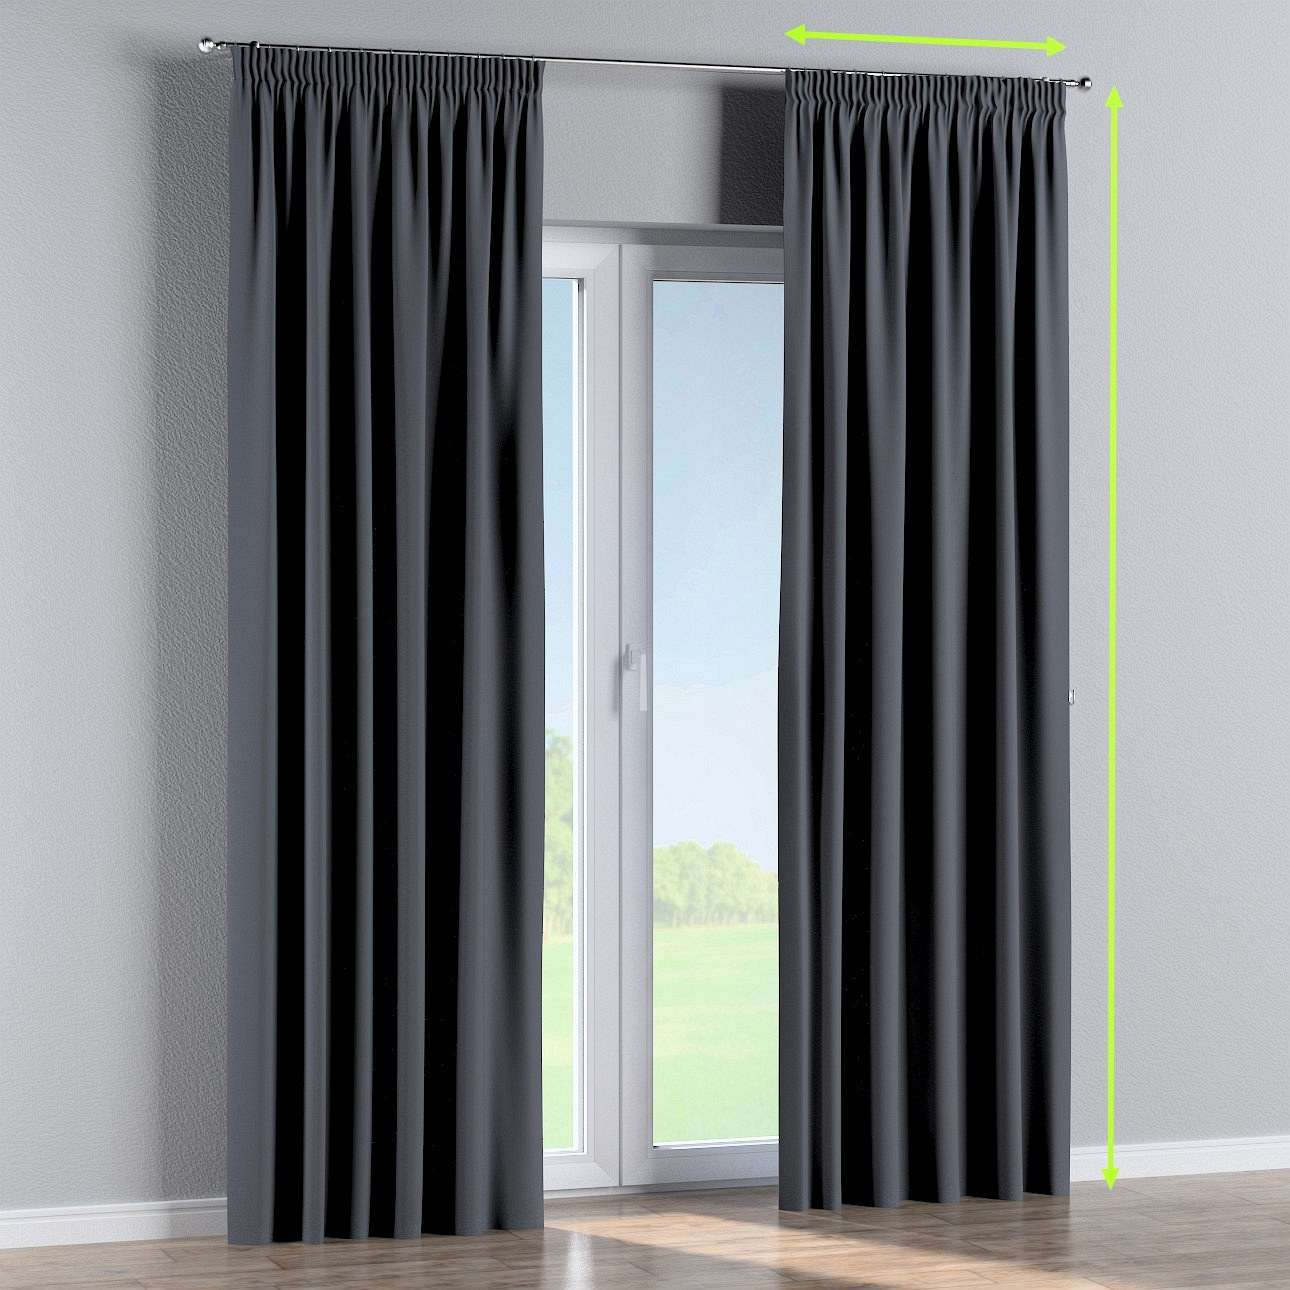 Pencil pleat curtain in collection Blackout, fabric: 269-76